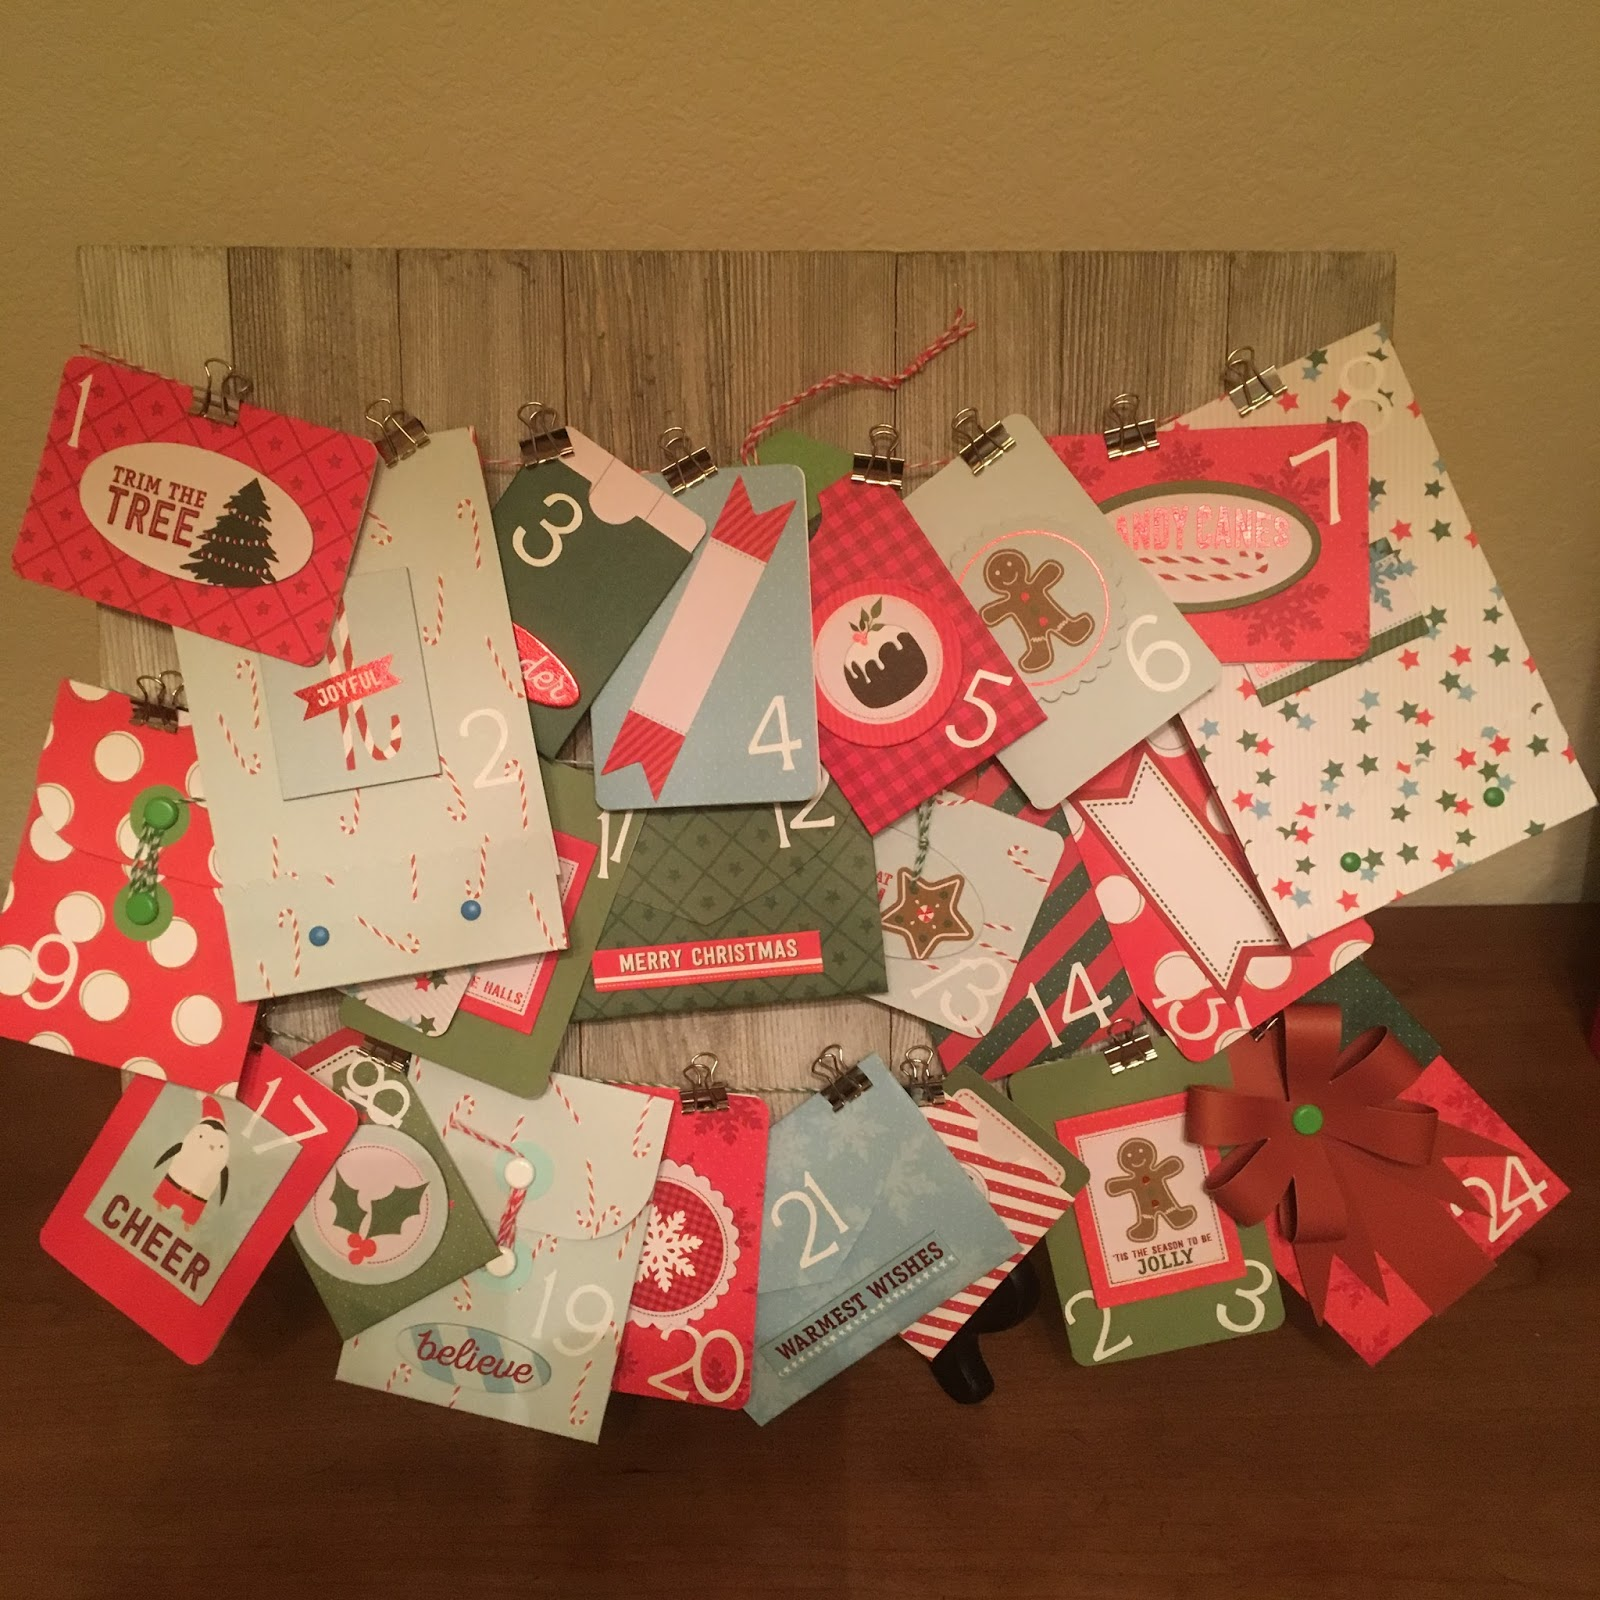 Christmas In July Ideas For Work.Lifetalesbooks Personal Publishing Christmas In July Diy